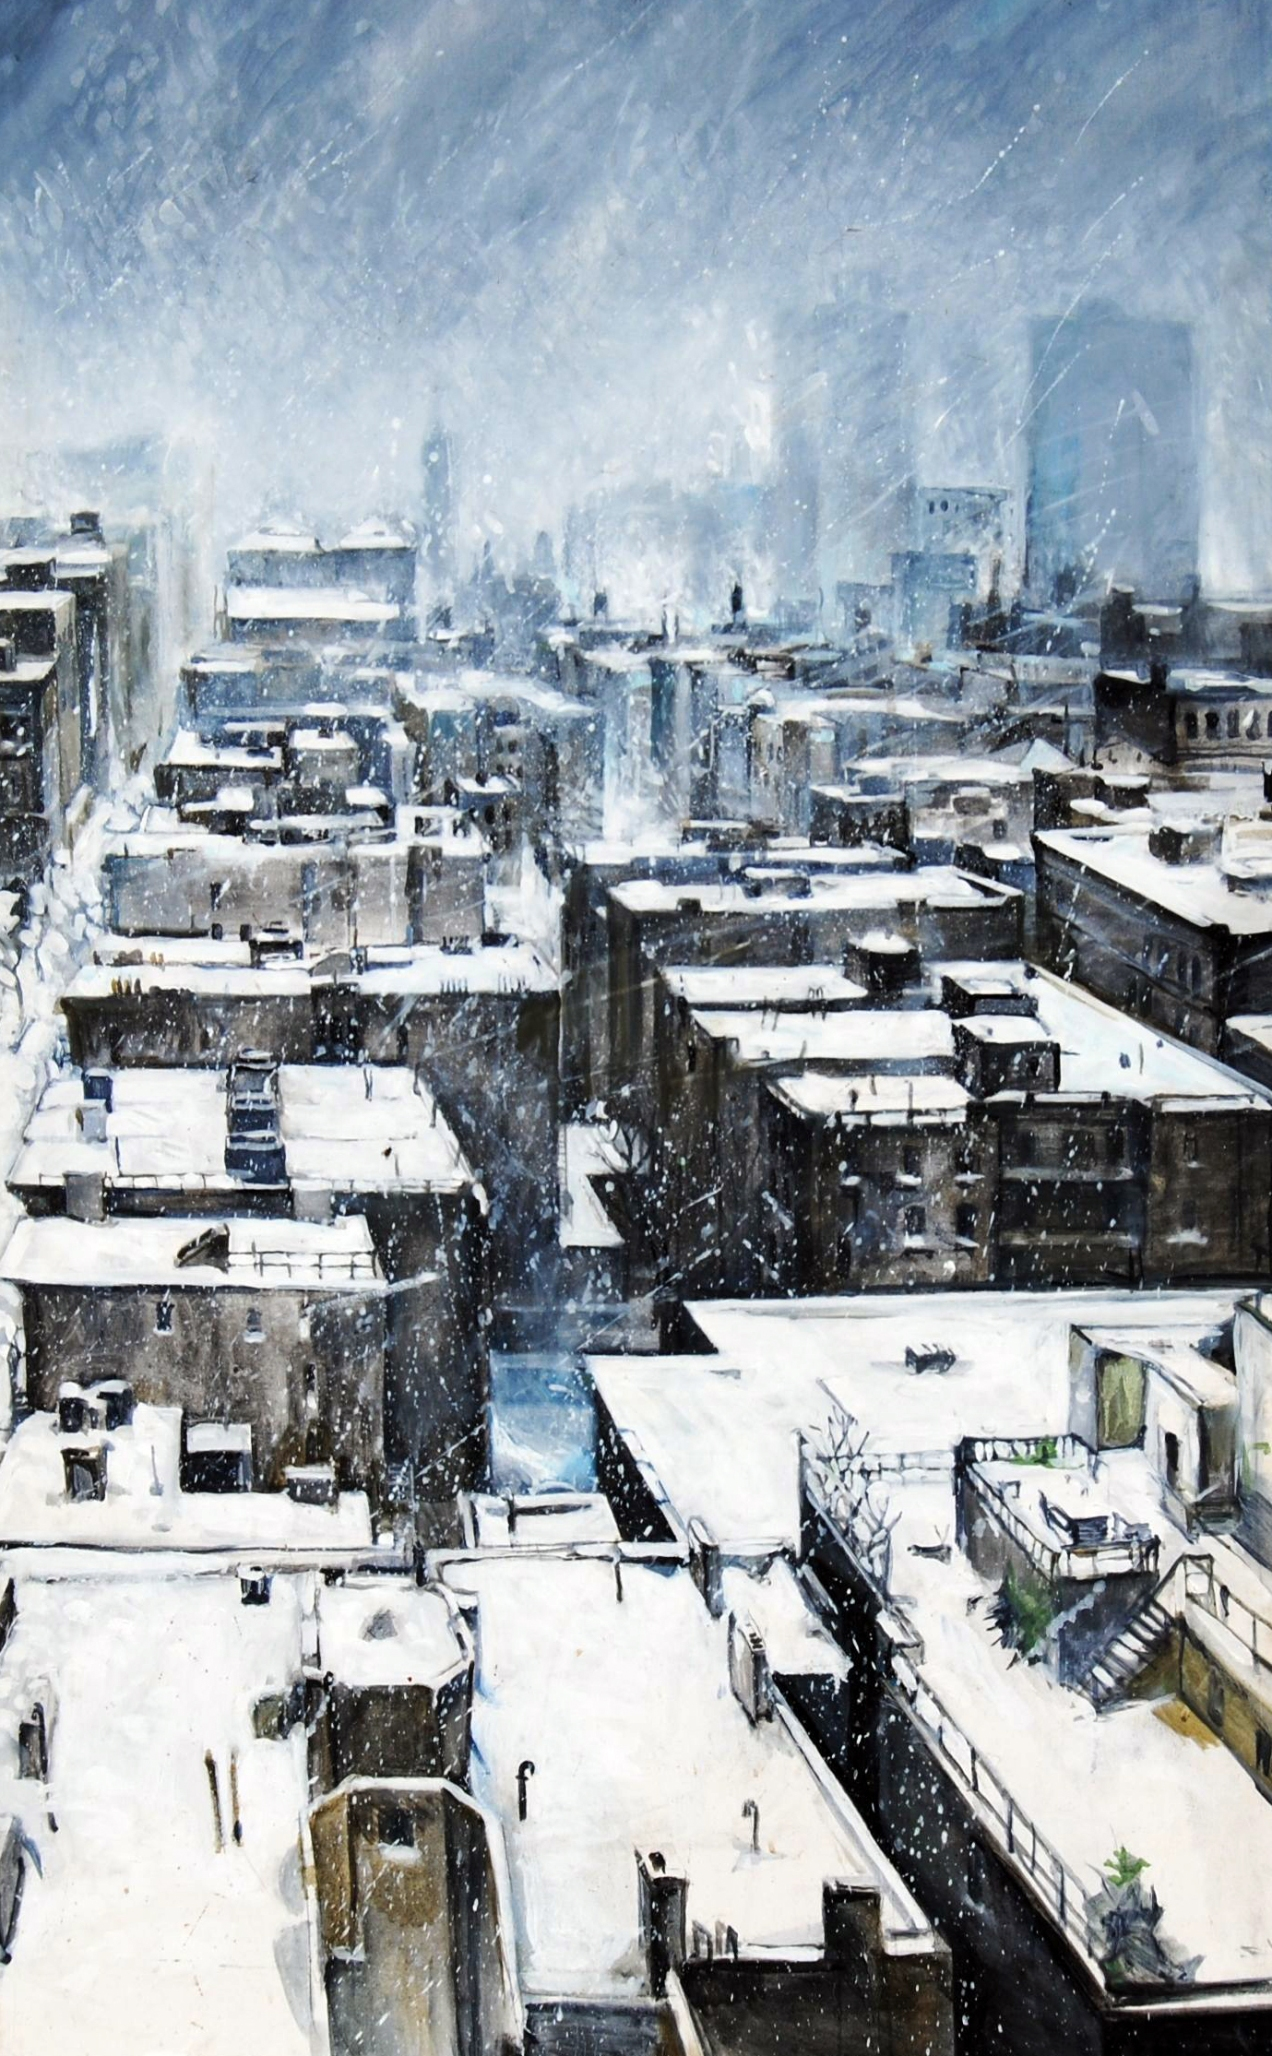 Blizzard of '96 (SoHo) 3' x  5' Oil on Canvas